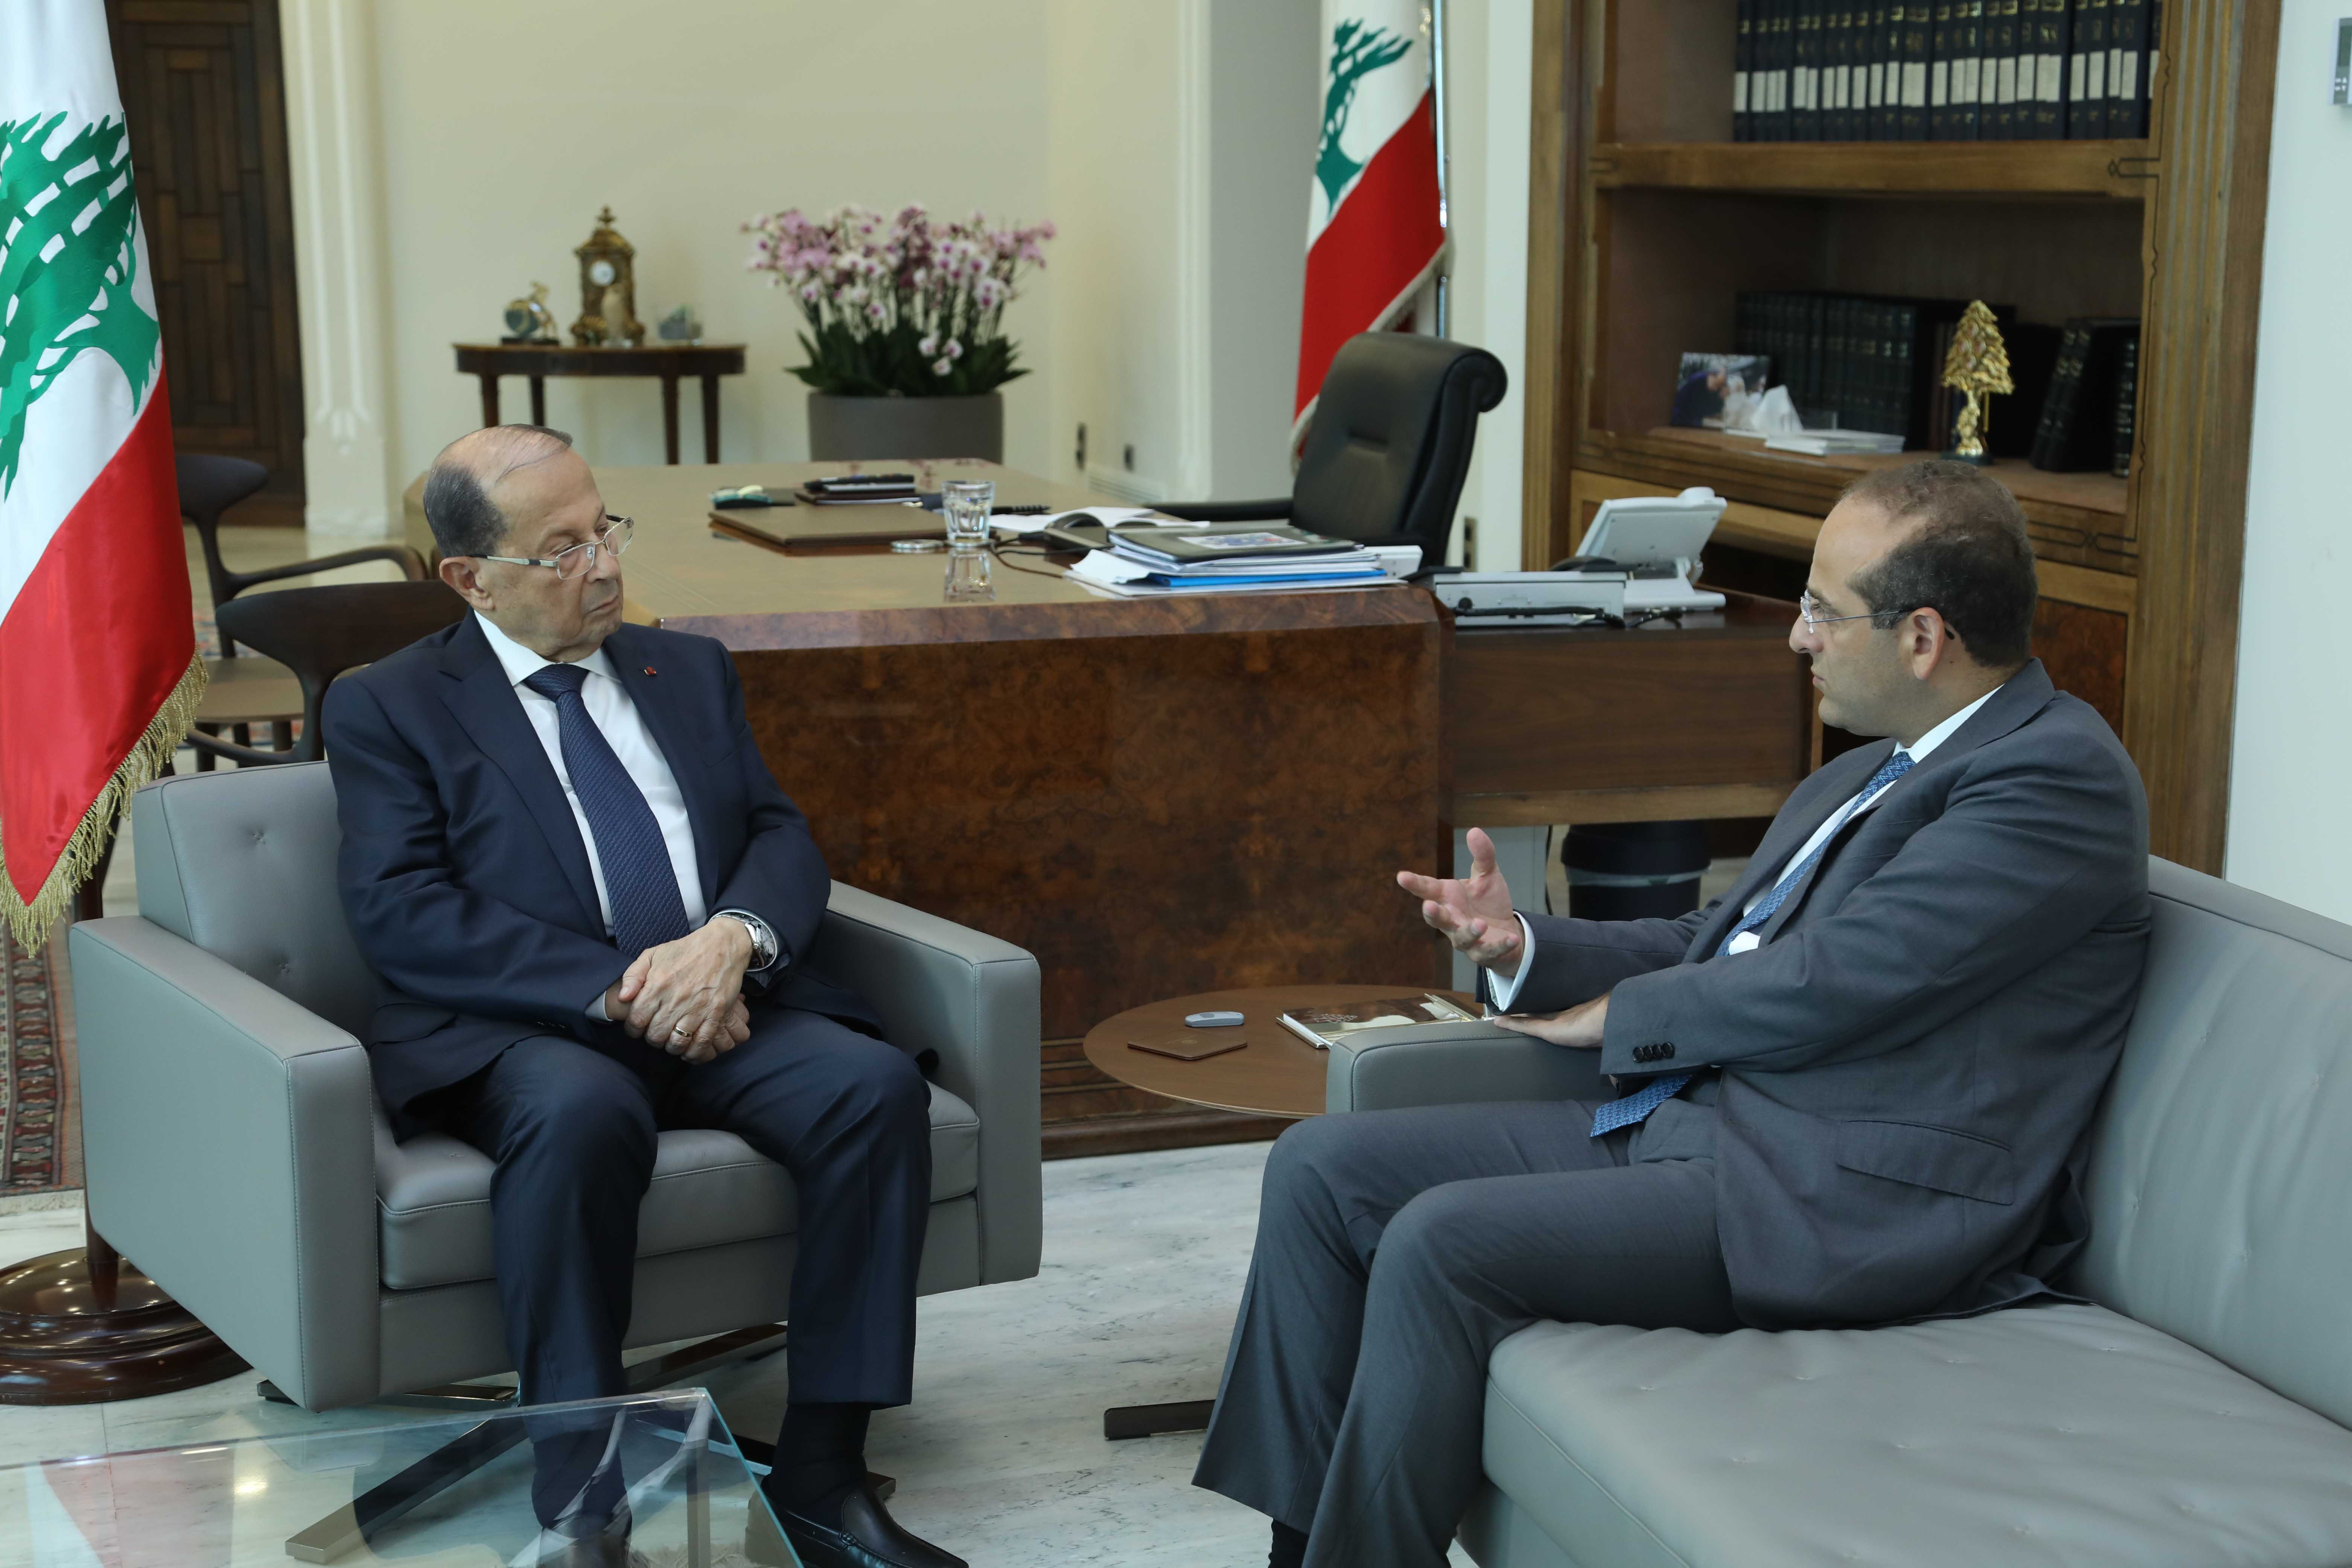 MINISTER RAED KHOURY